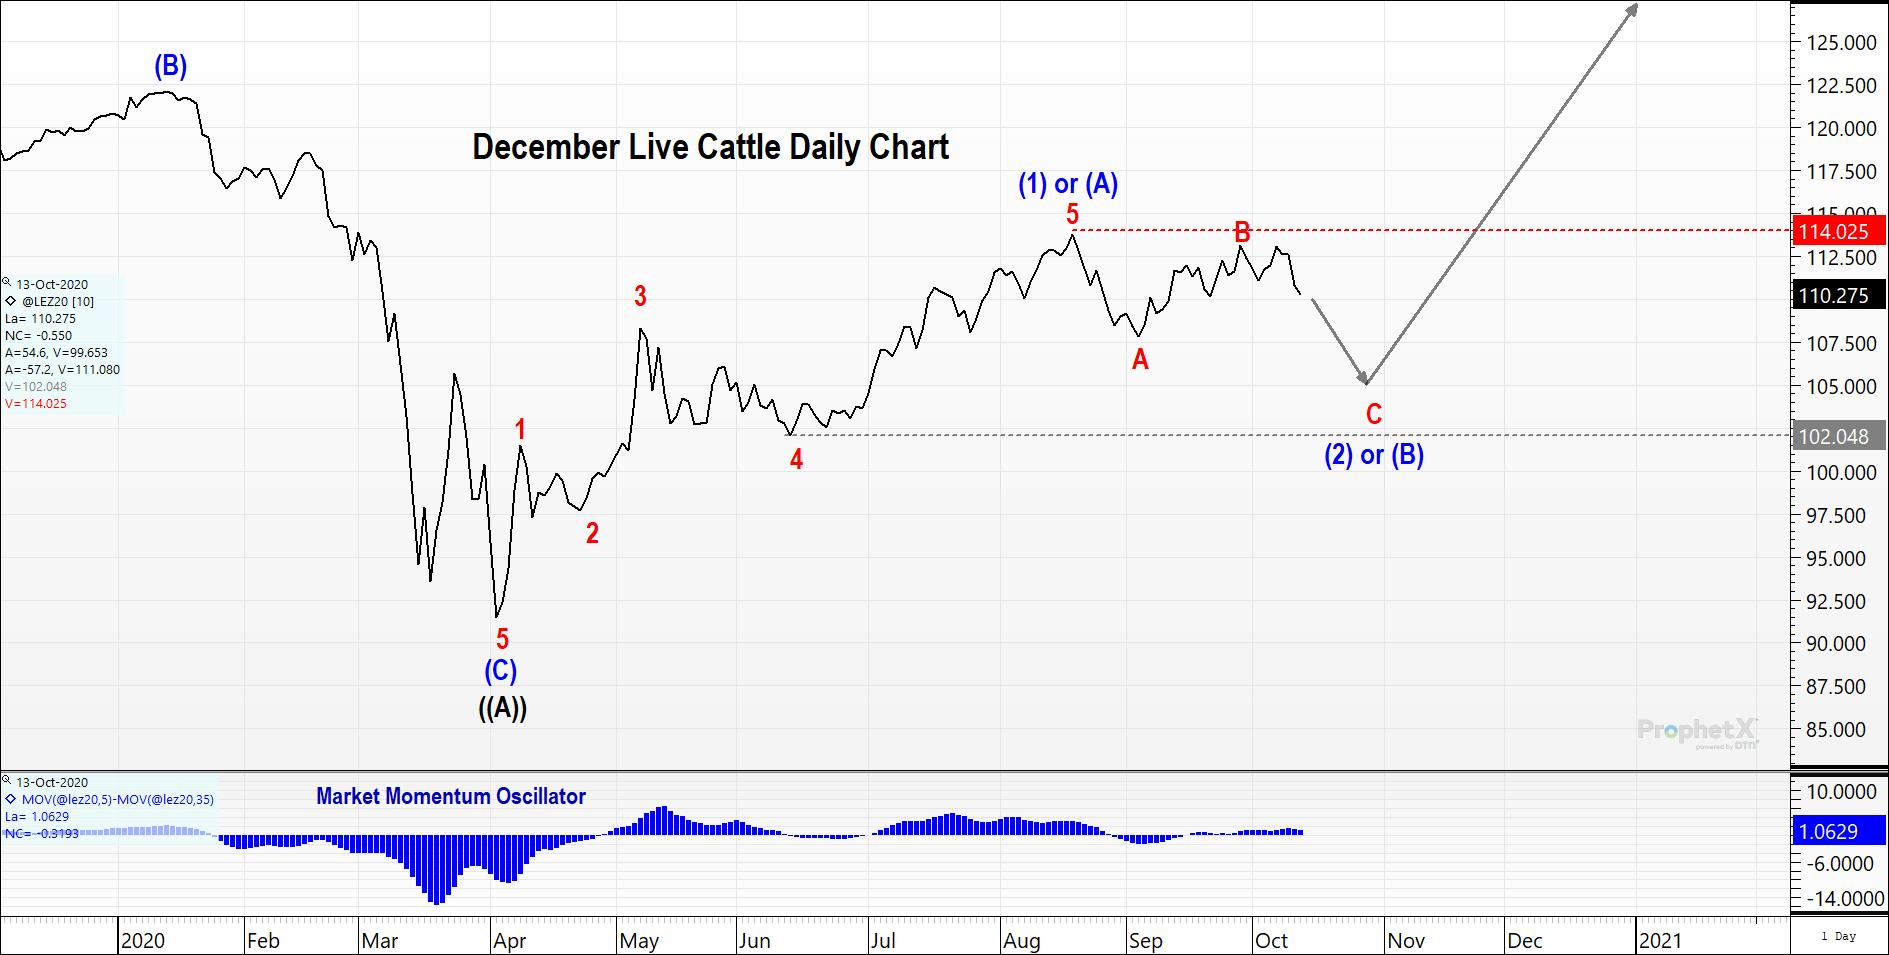 December Live Cattle Daily Chart